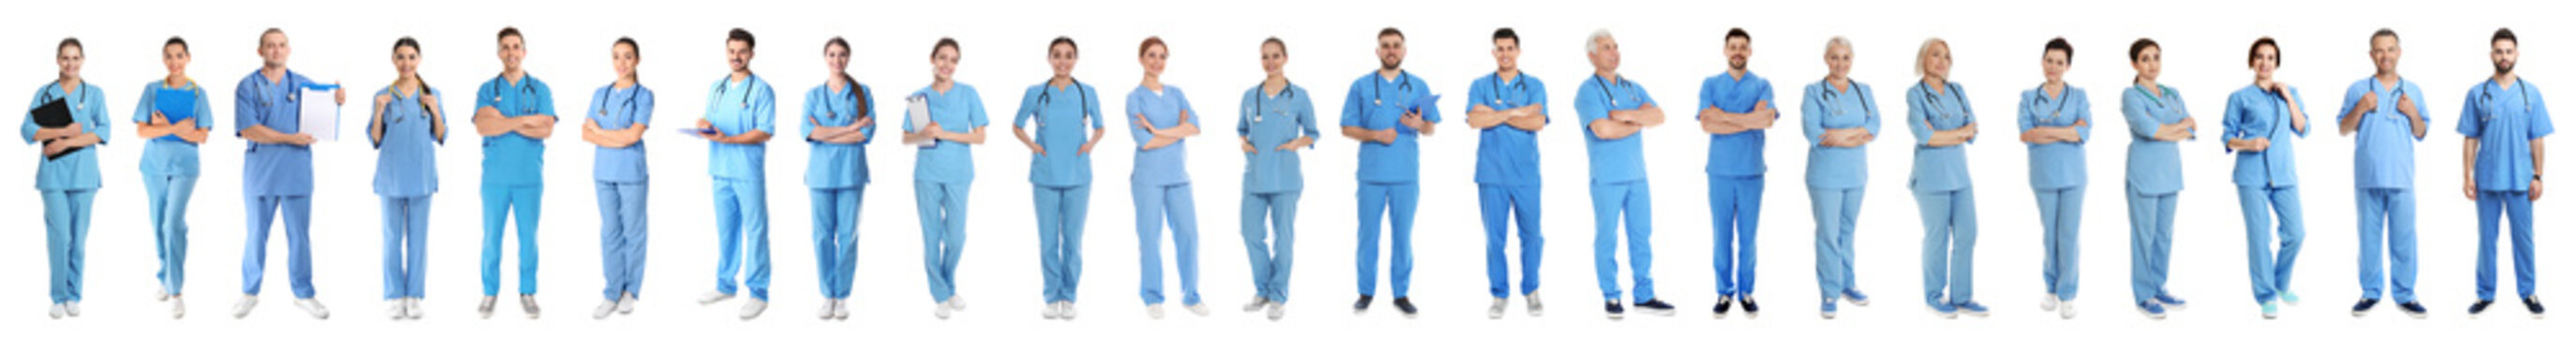 Collage of people in uniforms on white background. Medical staff